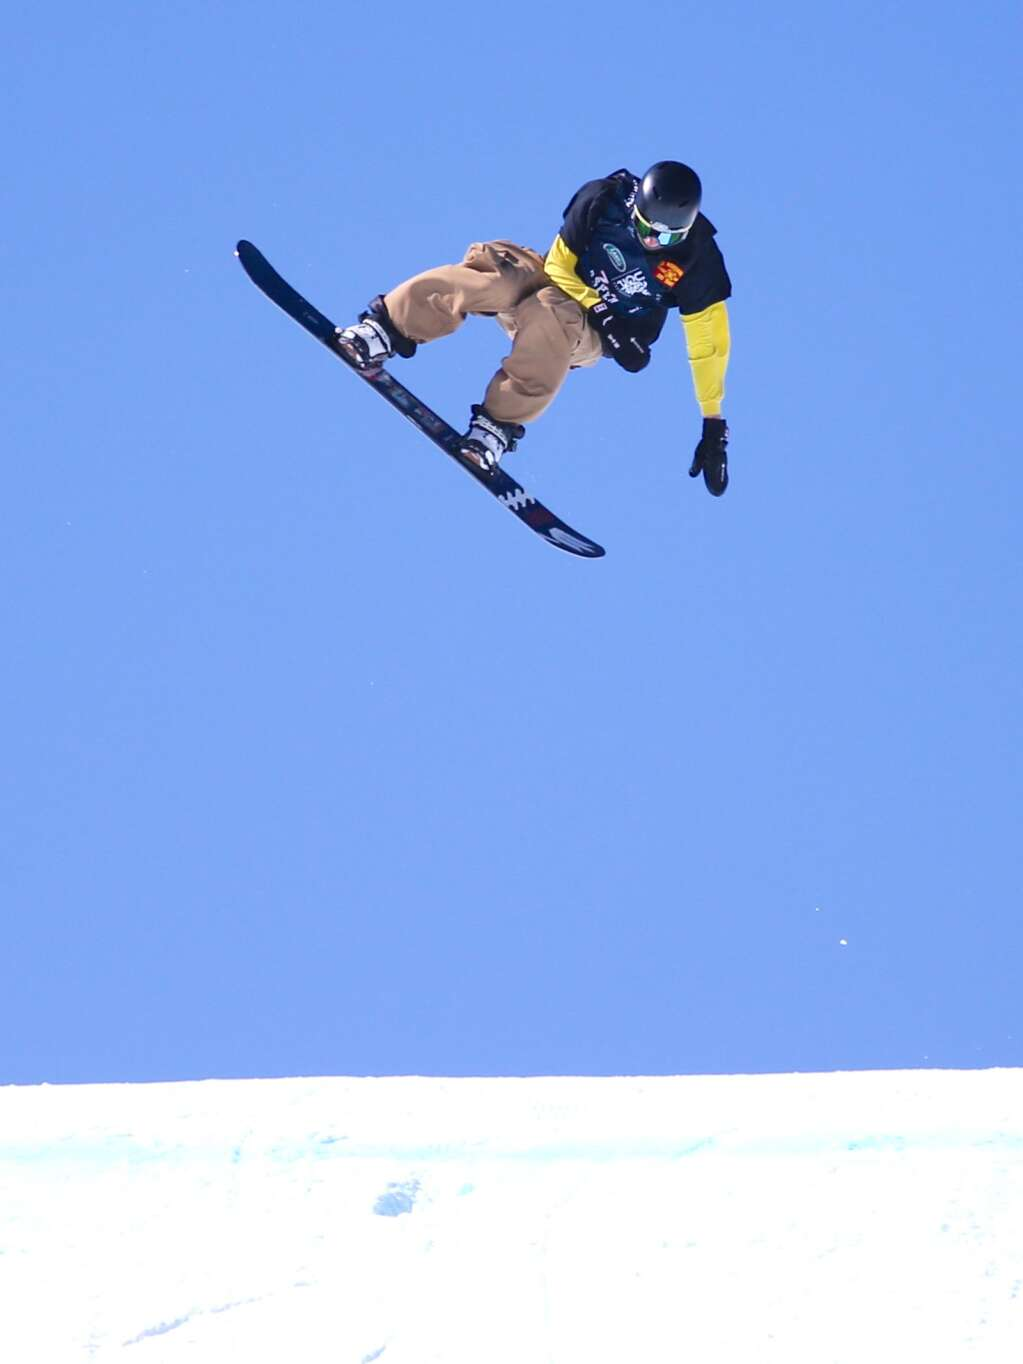 Canada's Jacob Legault competes in the men's snowboard slopestyle qualifier of the U.S. Grand Prix and World Cup on Friday, March 19, 2021, at Buttermilk Ski Area in Aspen. Photo by Austin Colbert/The Aspen Times.